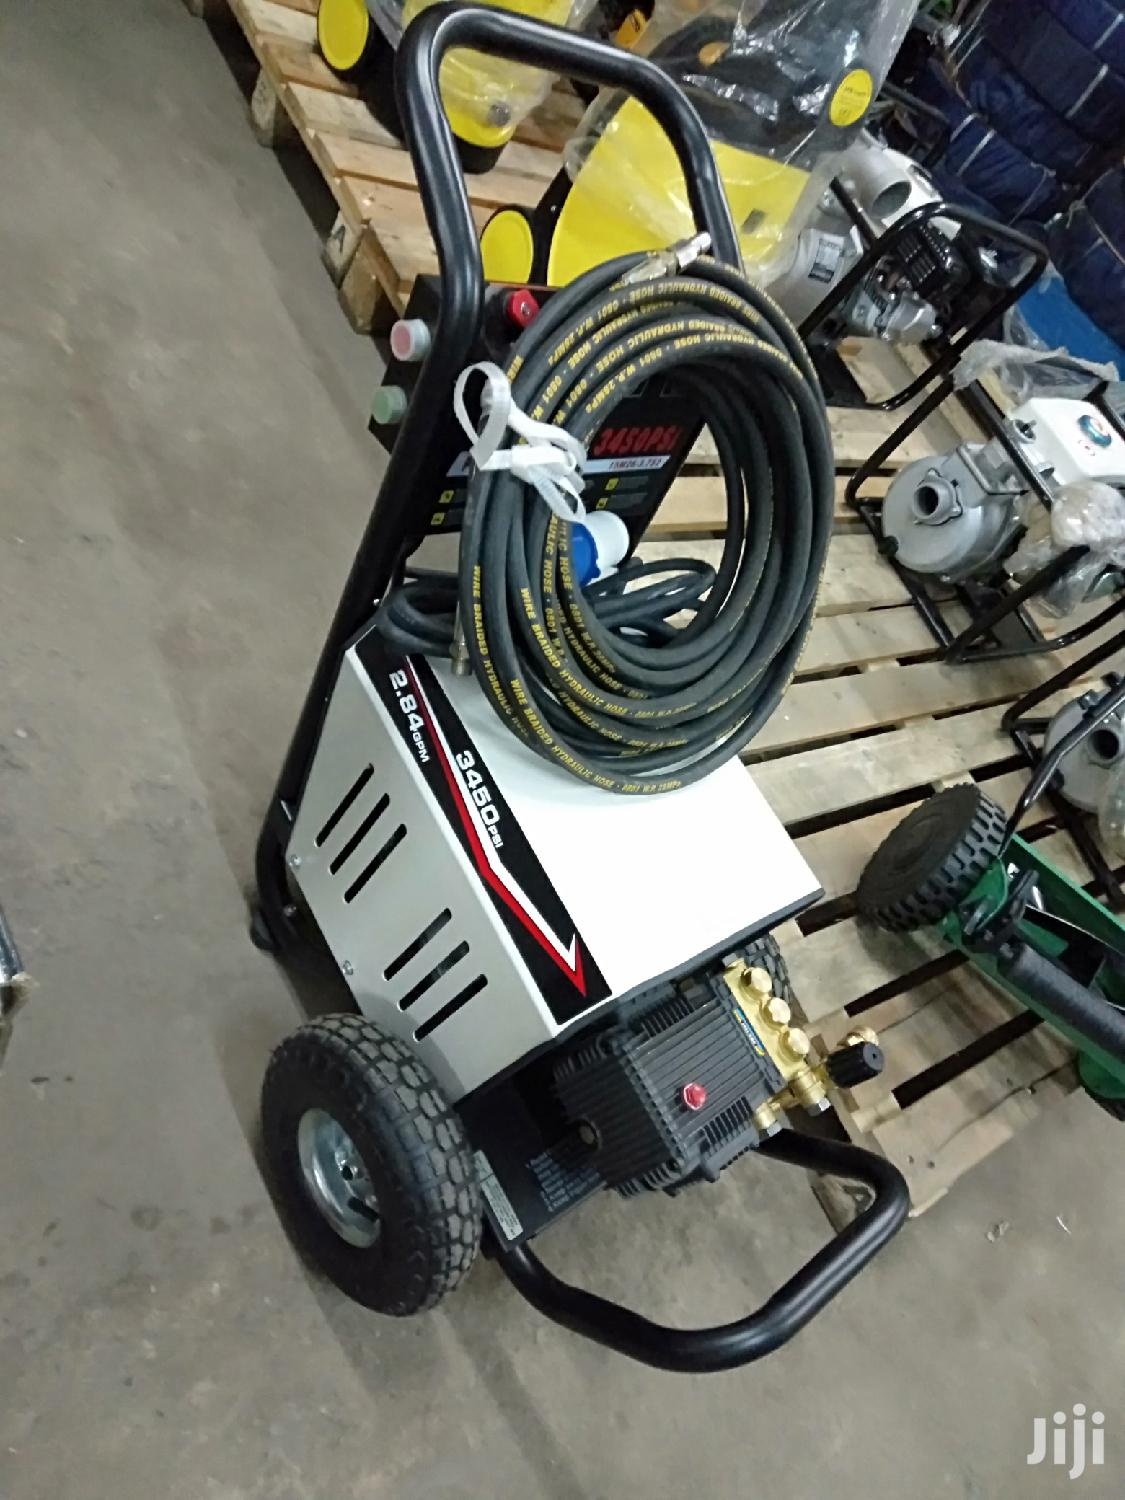 Kicho High Pressure Washer Machine